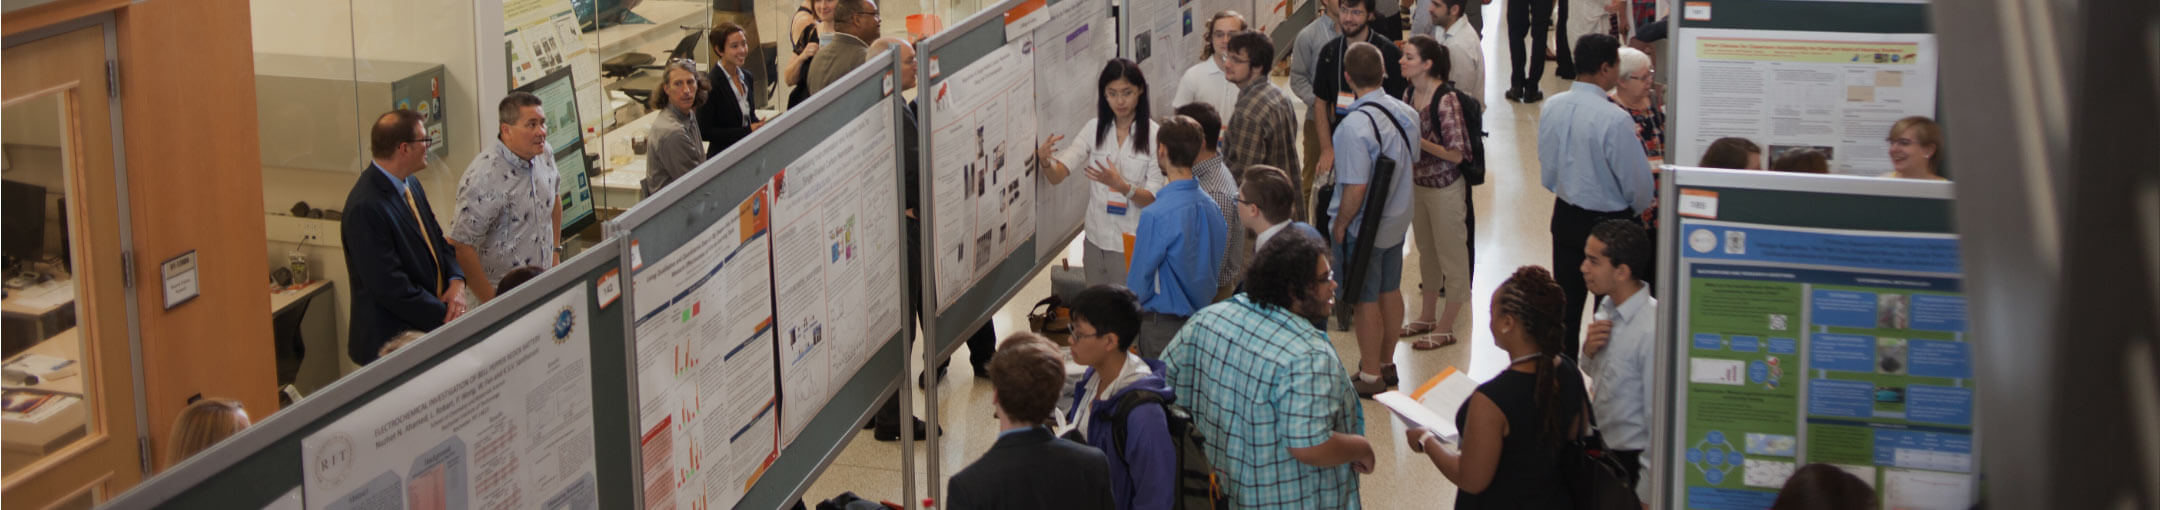 Participants and attendees of a previous Undergraduate Research Symposium viewing various exhibits.